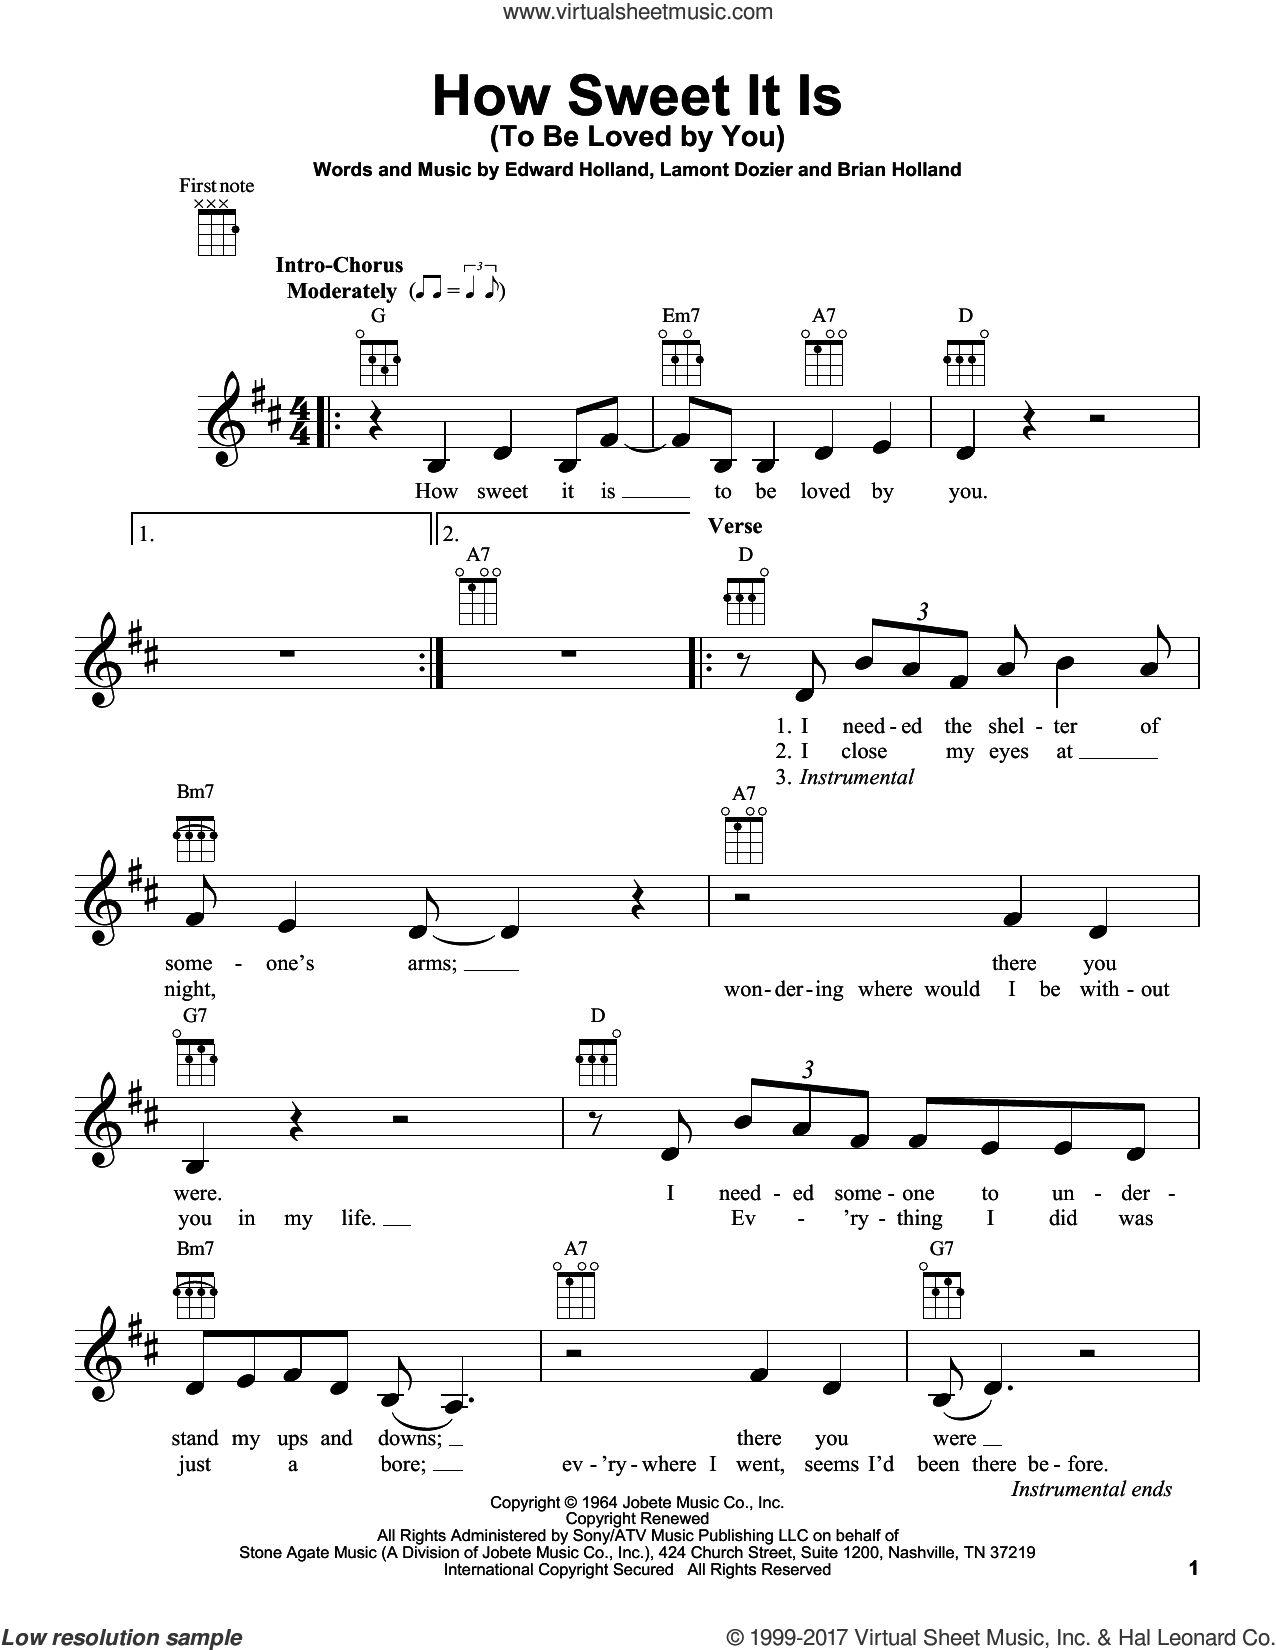 How Sweet It Is (To Be Loved By You) sheet music for ukulele by James Taylor, Marvin Gaye, Brian Holland, Eddie Holland and Lamont Dozier, intermediate skill level